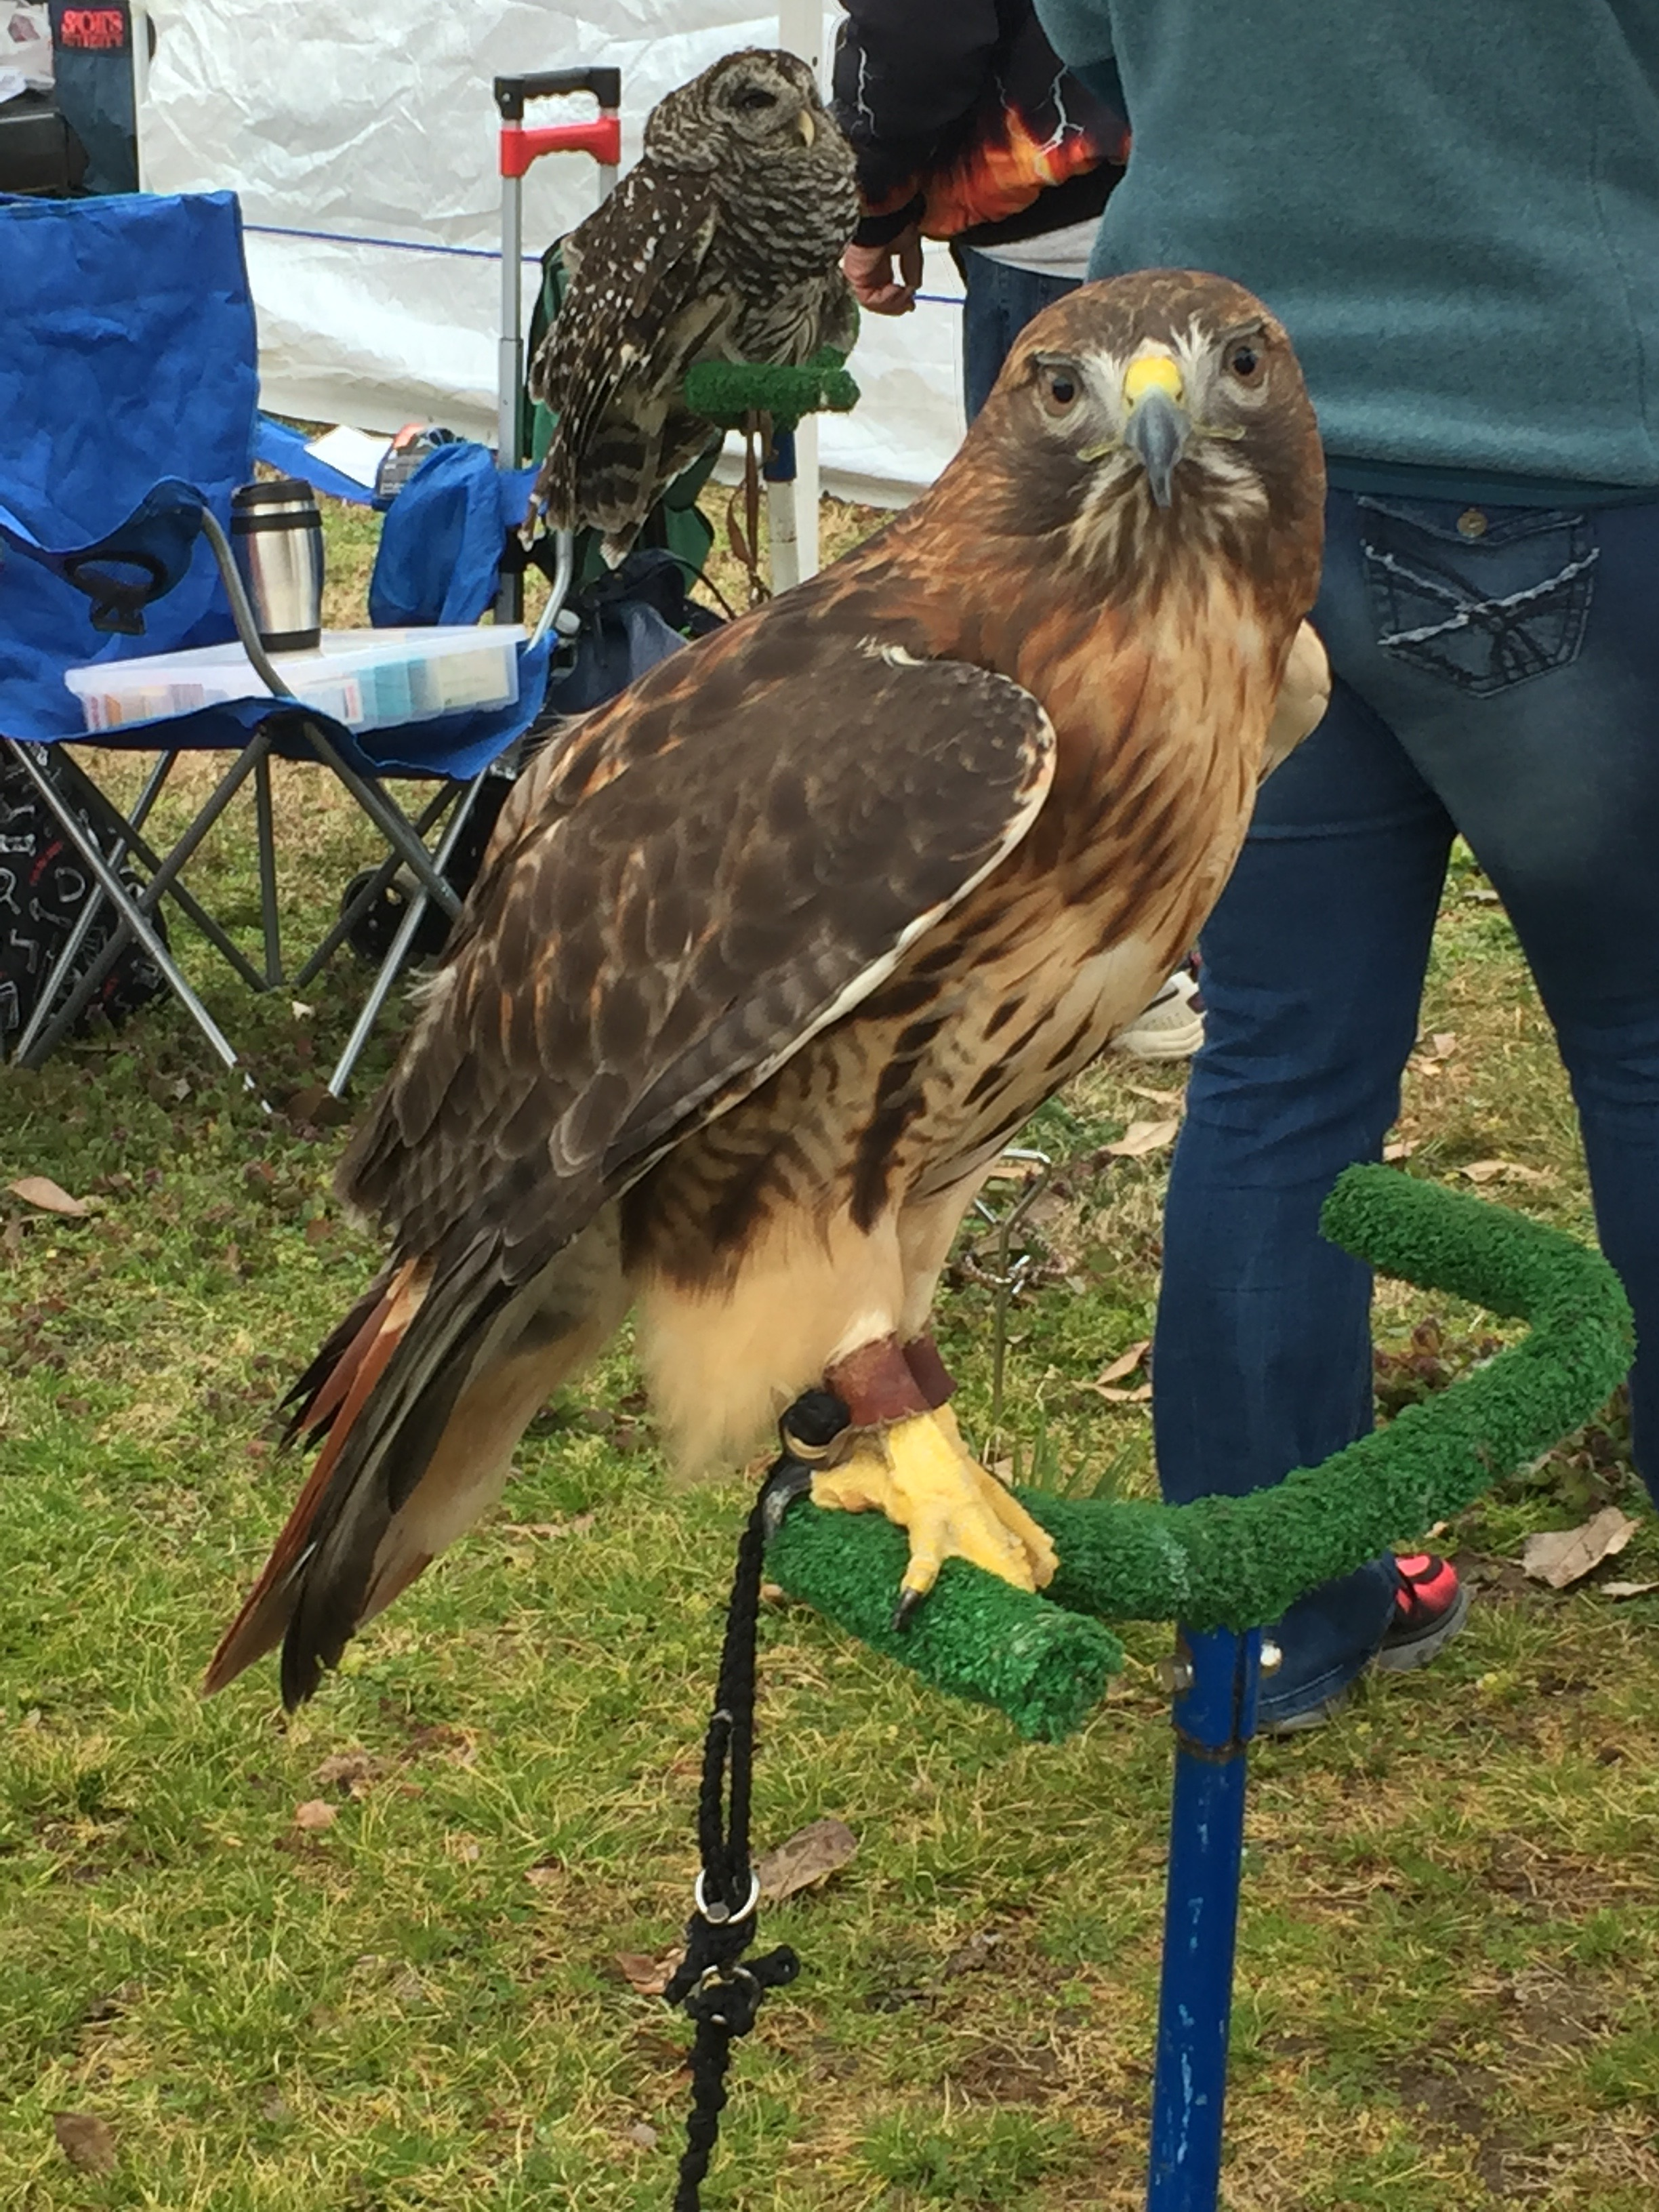 There were tons of artists and even some rehabilitates with their birds of prey like this red tailed hawk and a couple of owls!